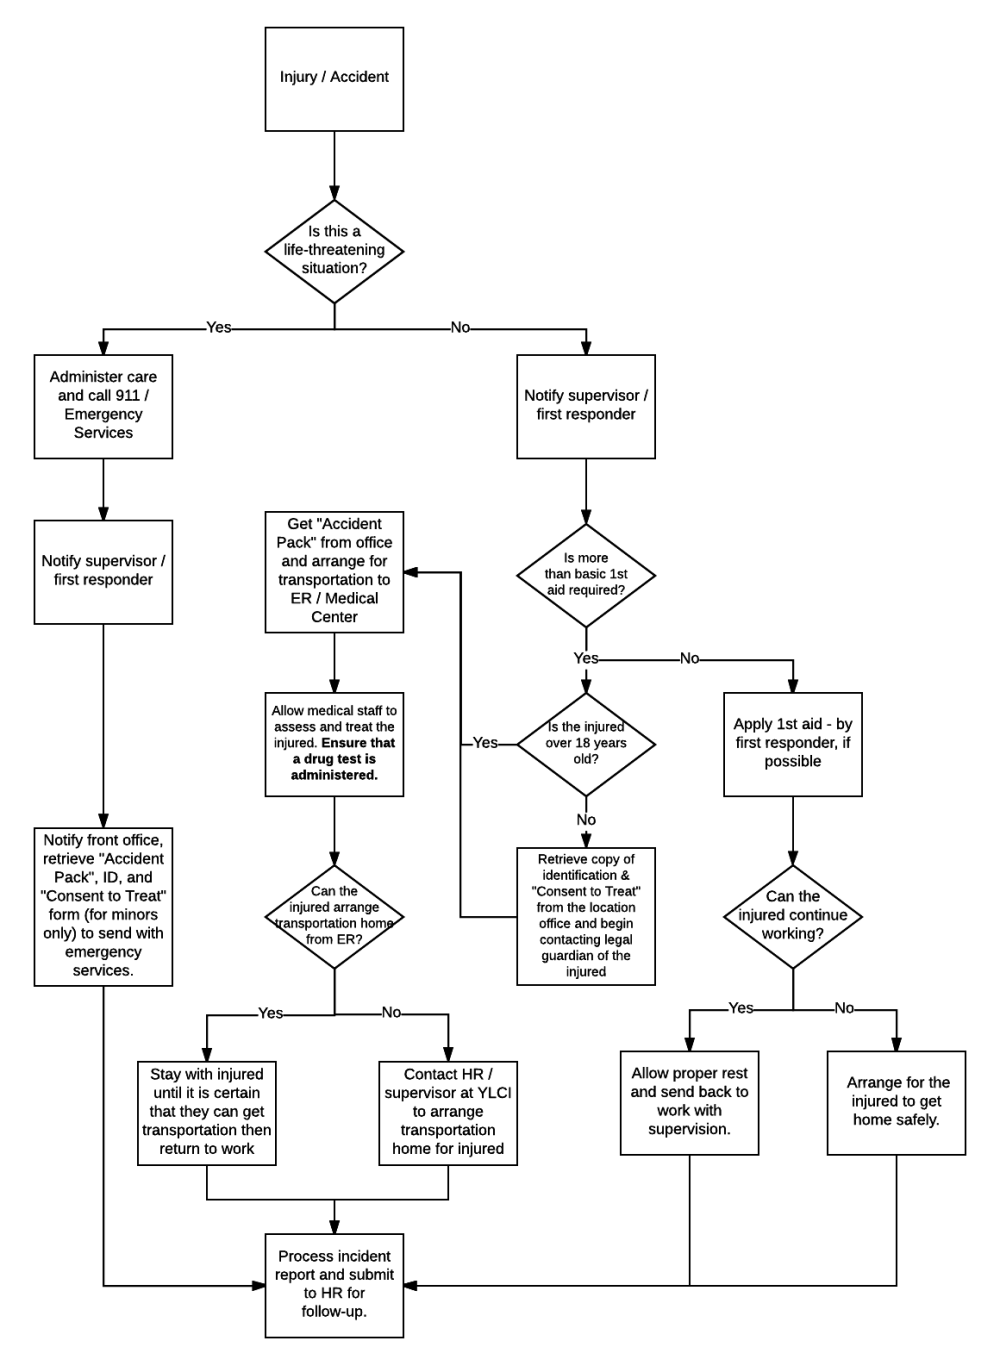 medium resolution of similar to the process flow diagrams decision trees clearly show the steps one should take if an accident happens on site so the employee can respond